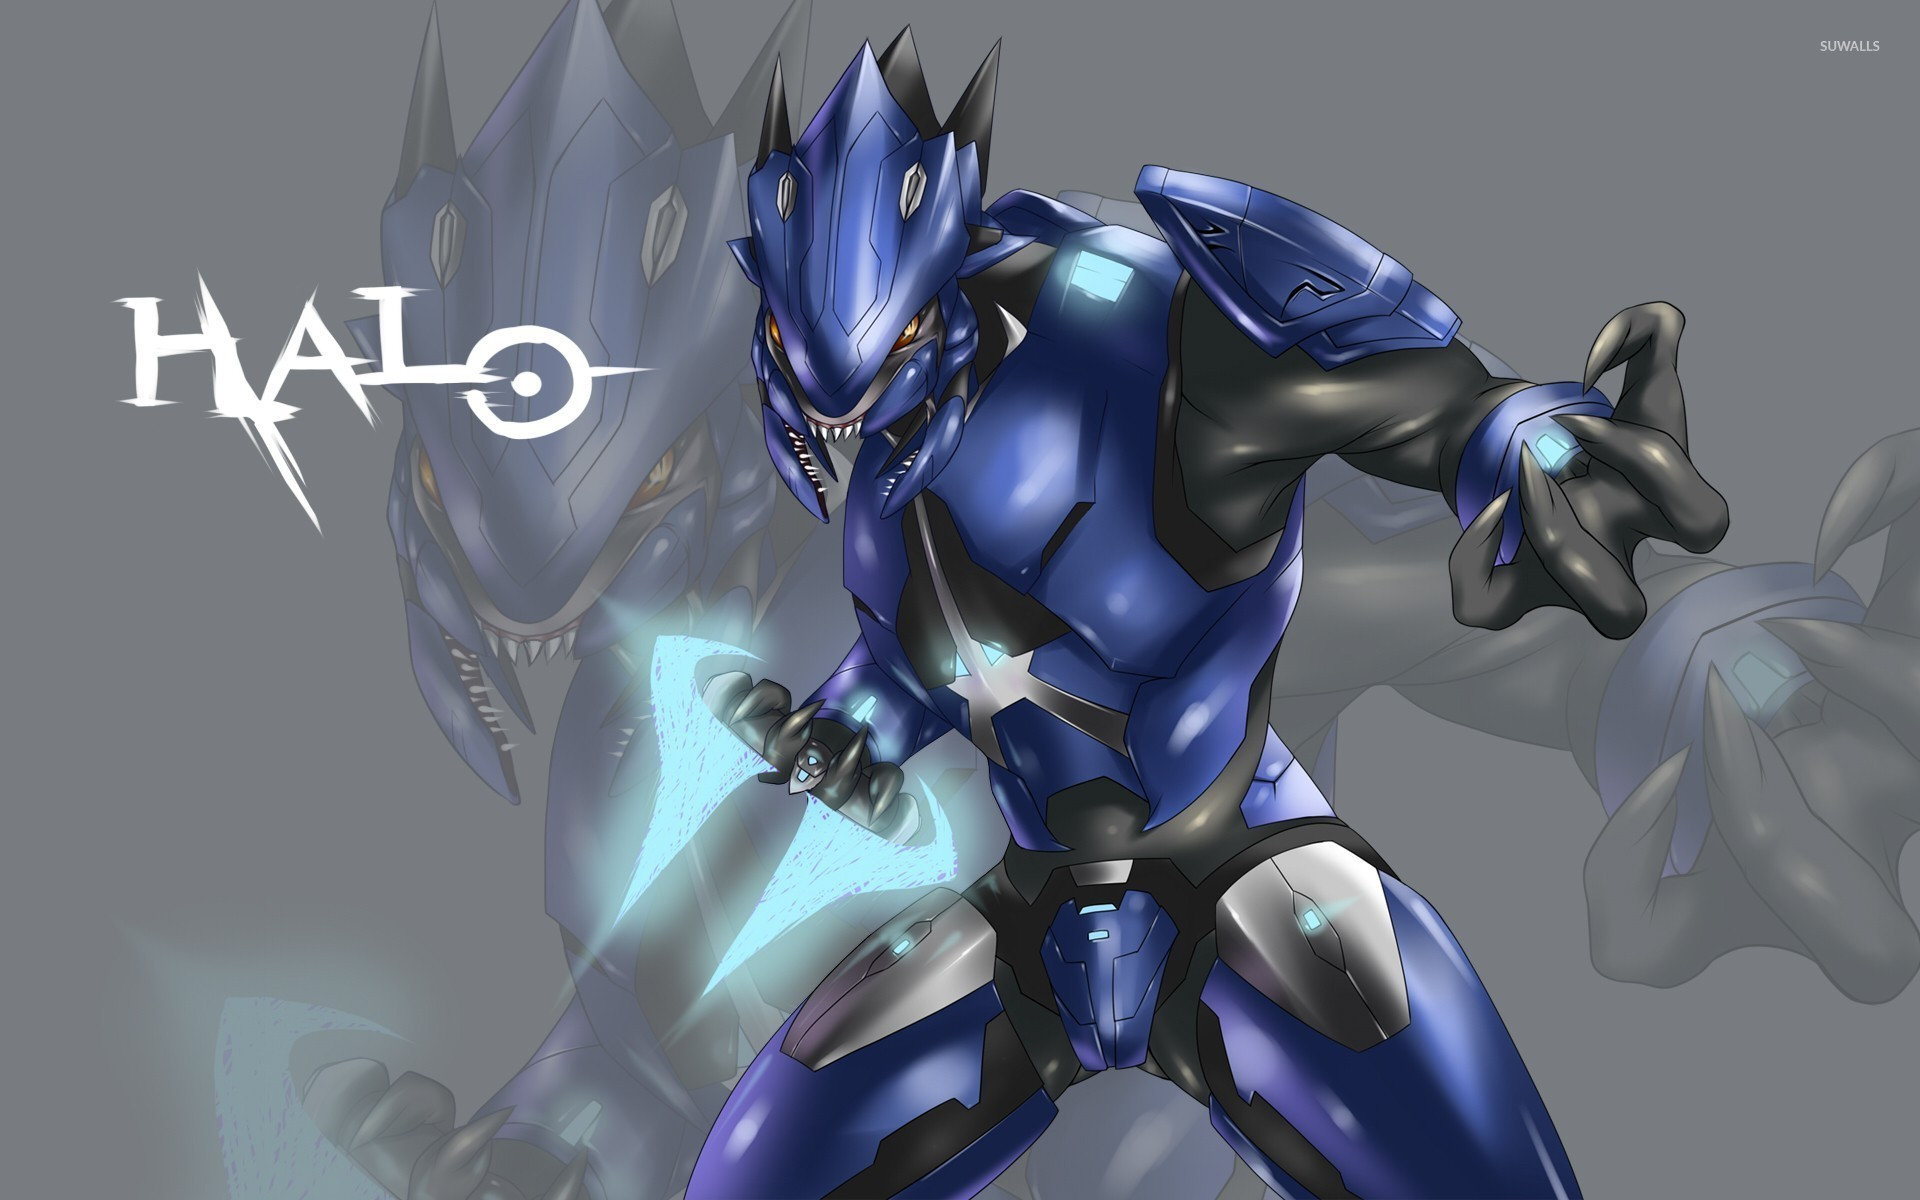 halo wallpaper 1920×1080 wallpapers browse; halo 4 23 wallpaper game  wallpapers 34407 …